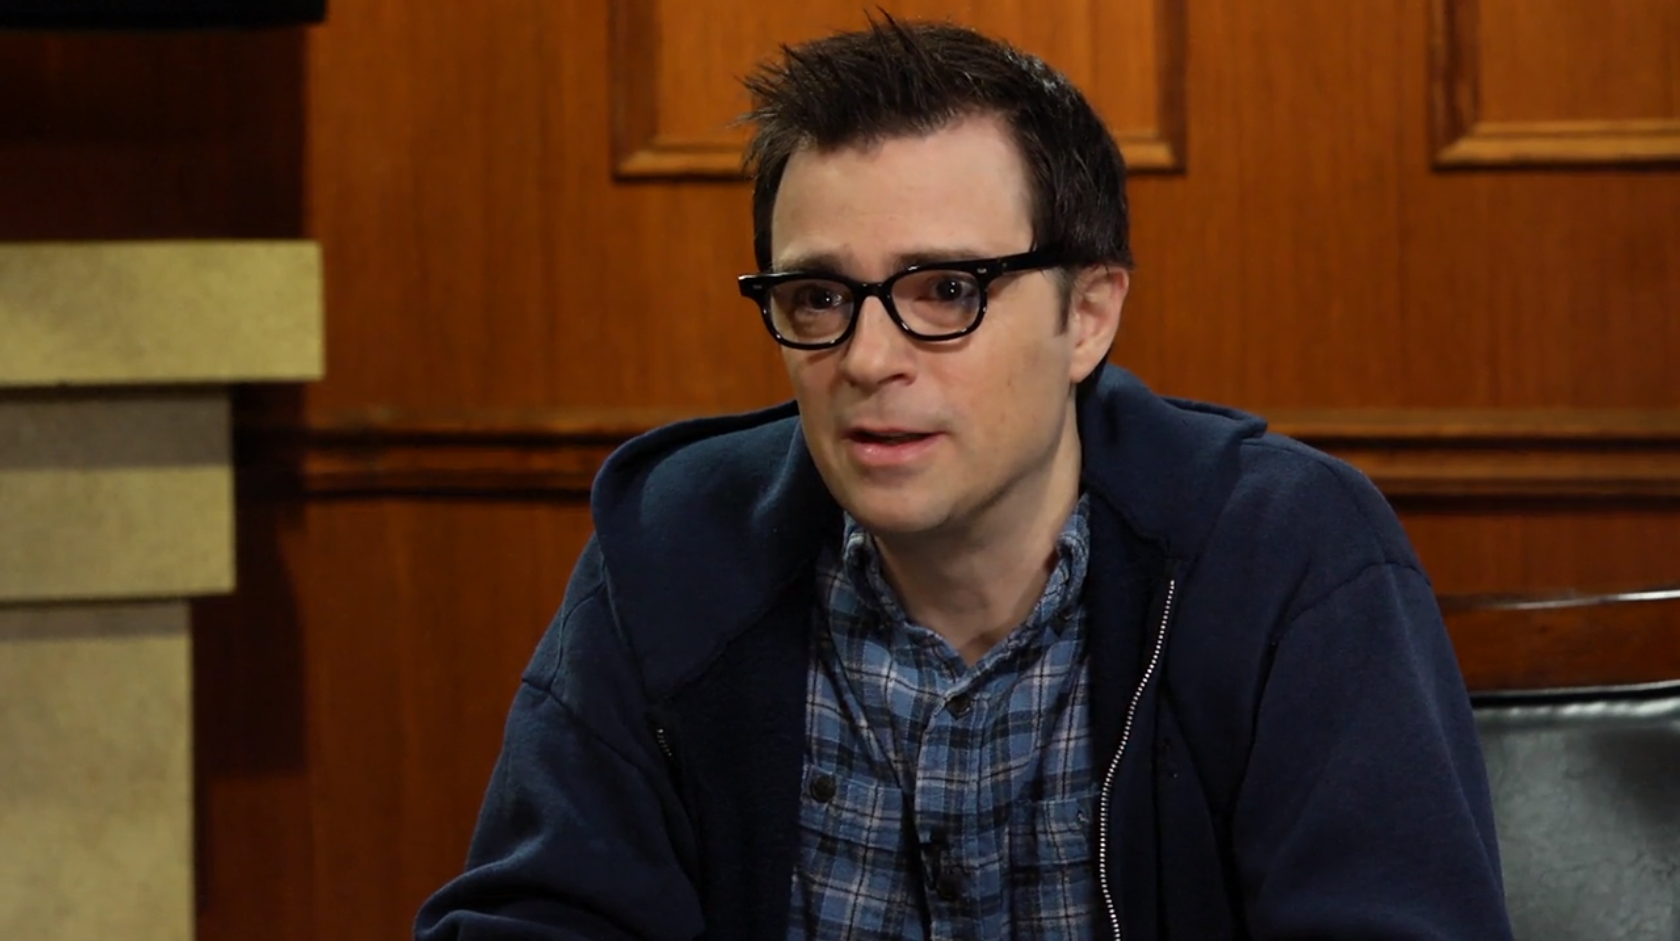 Rivers cuomo admission essay to harvard